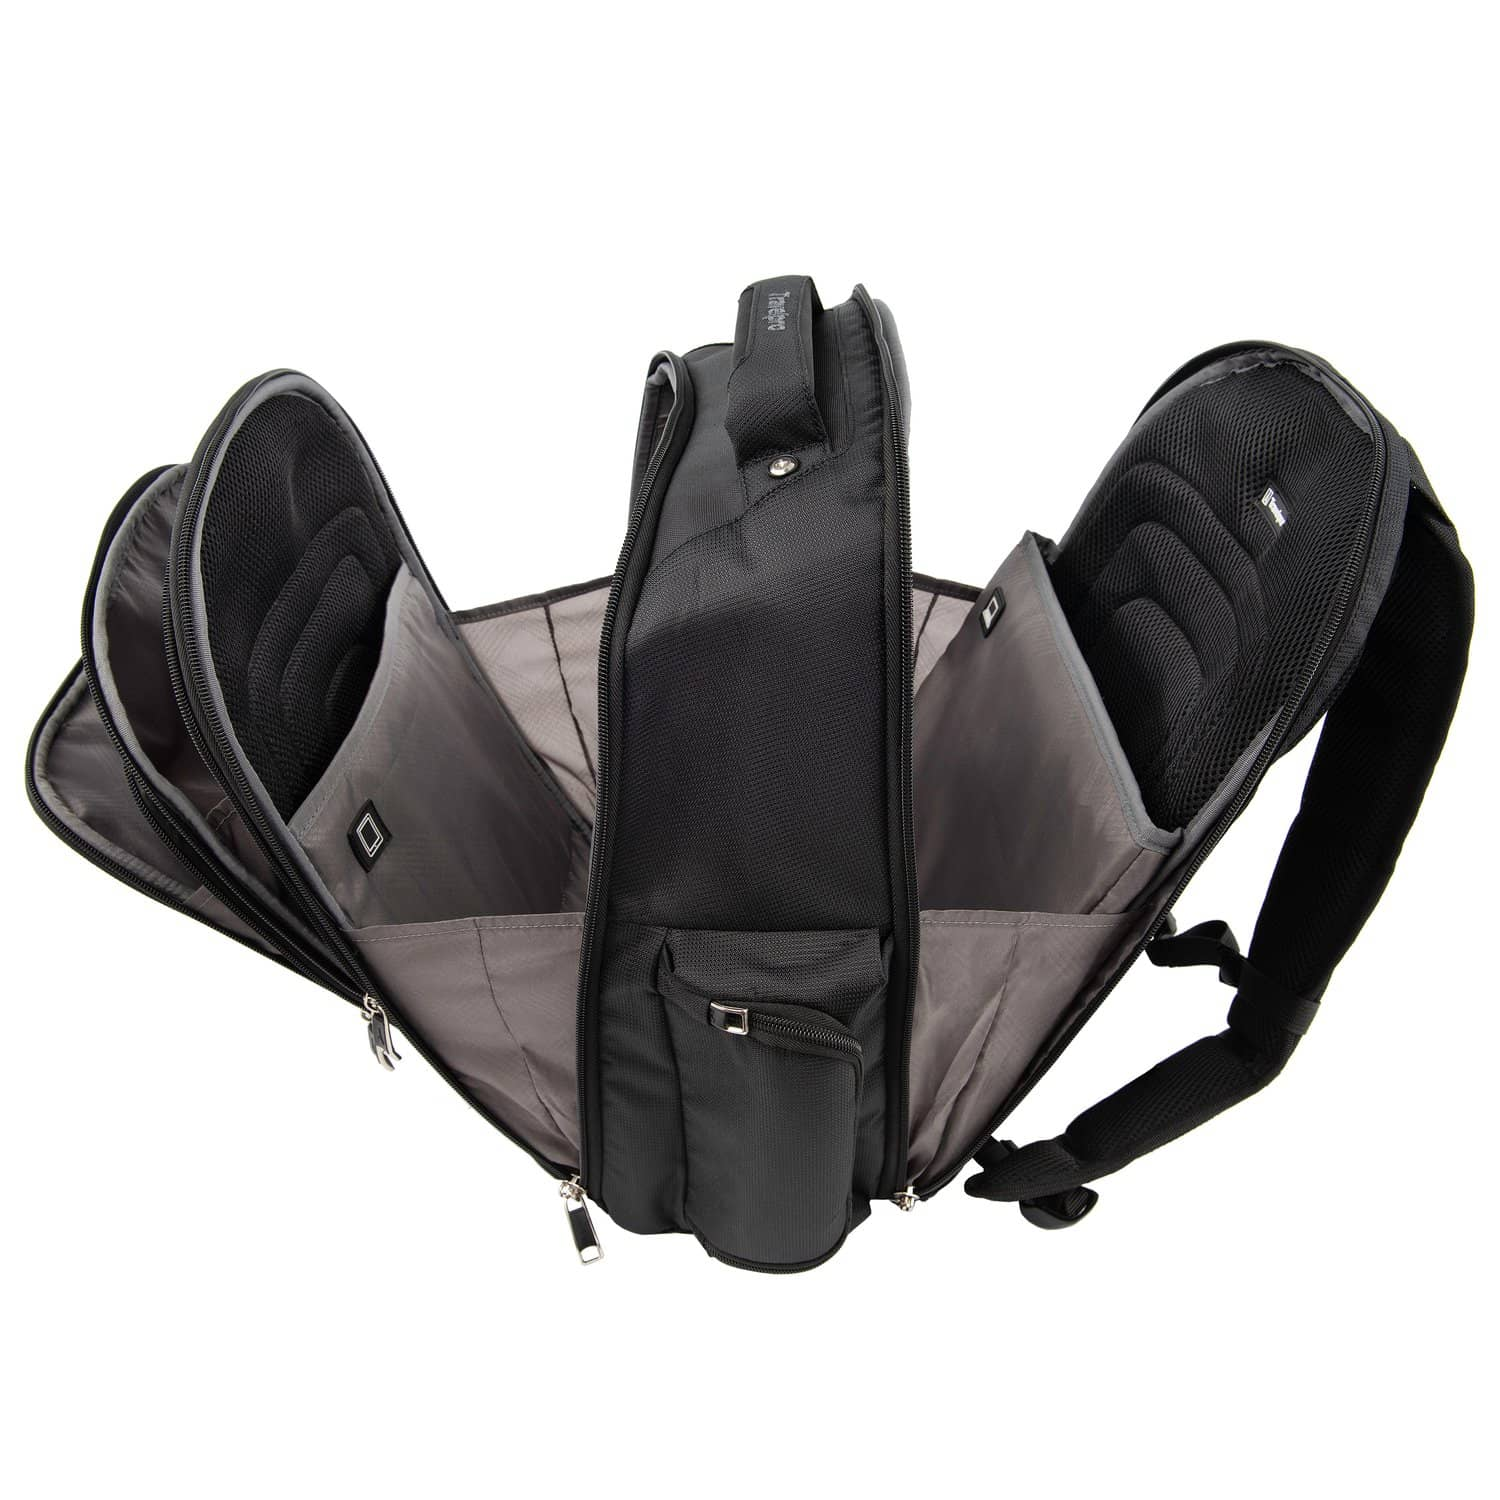 Maxlite® 5 Laptop Backpack